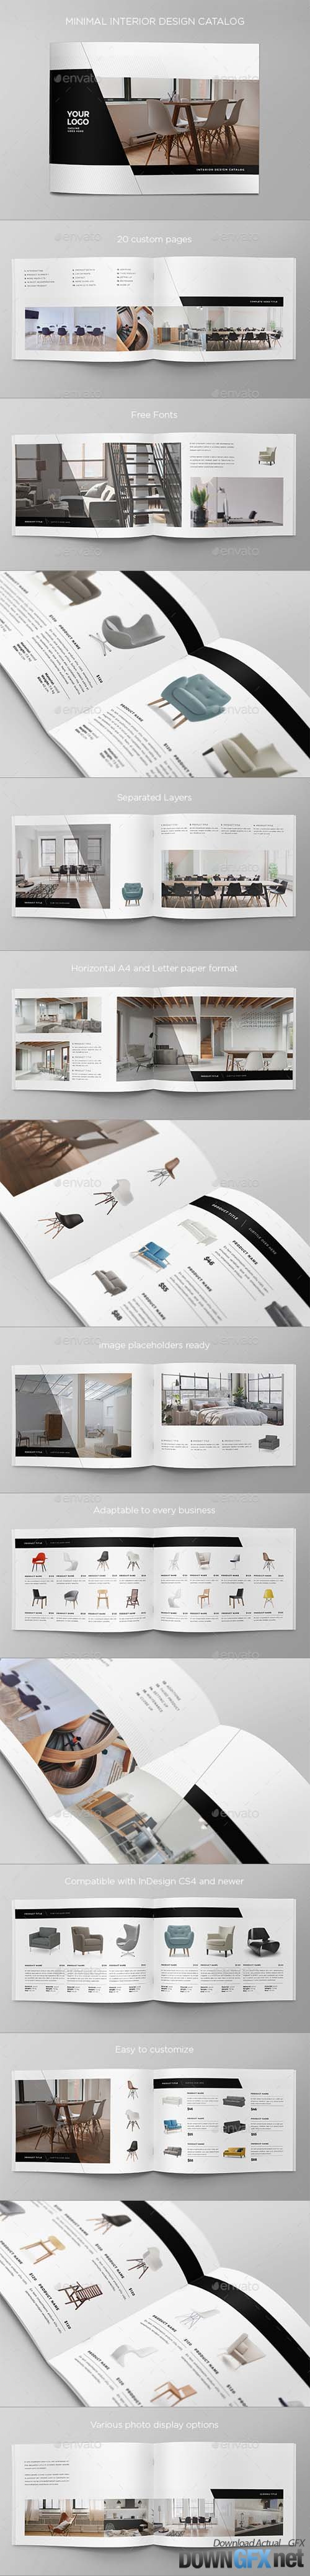 Minimal Interior Design Catalog 20507492